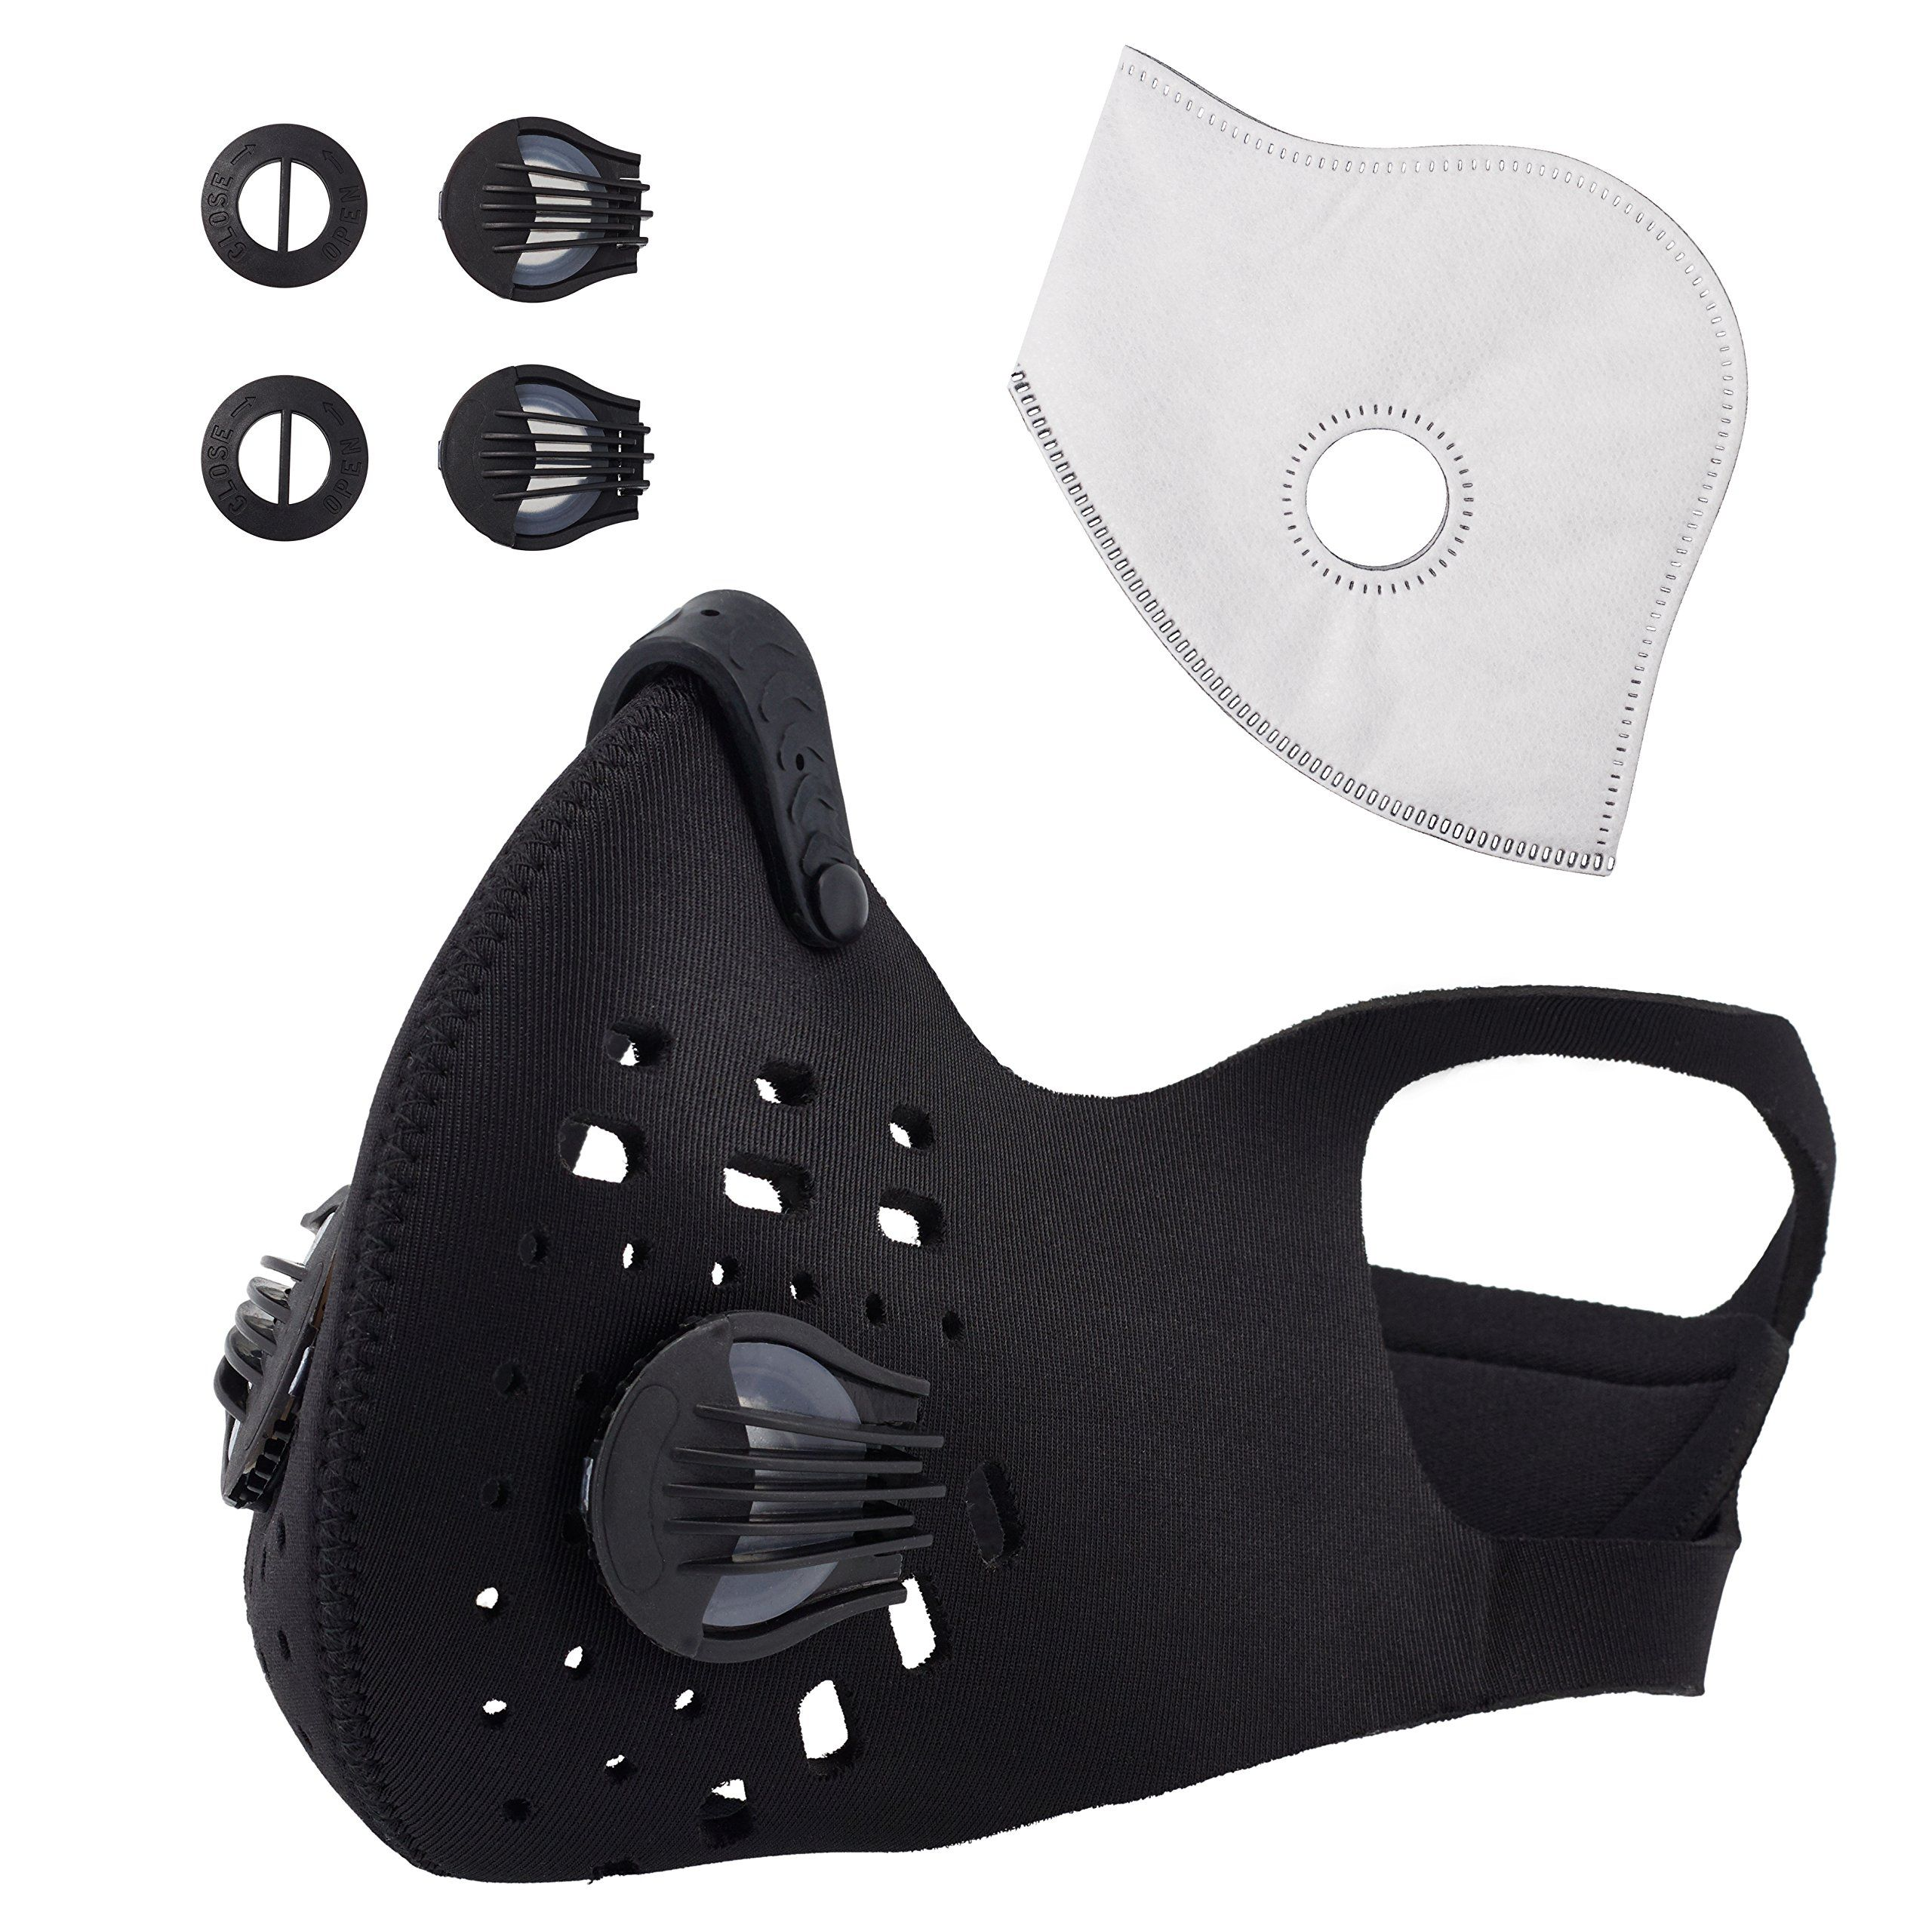 Envirovent 2 0v Antipollution Face Mask N99 Filter 2way Vents Activated Carbon Filtration Exhaust Fumes Anti Pollen And Al Diy Workout Face Mask Diy Face Mask